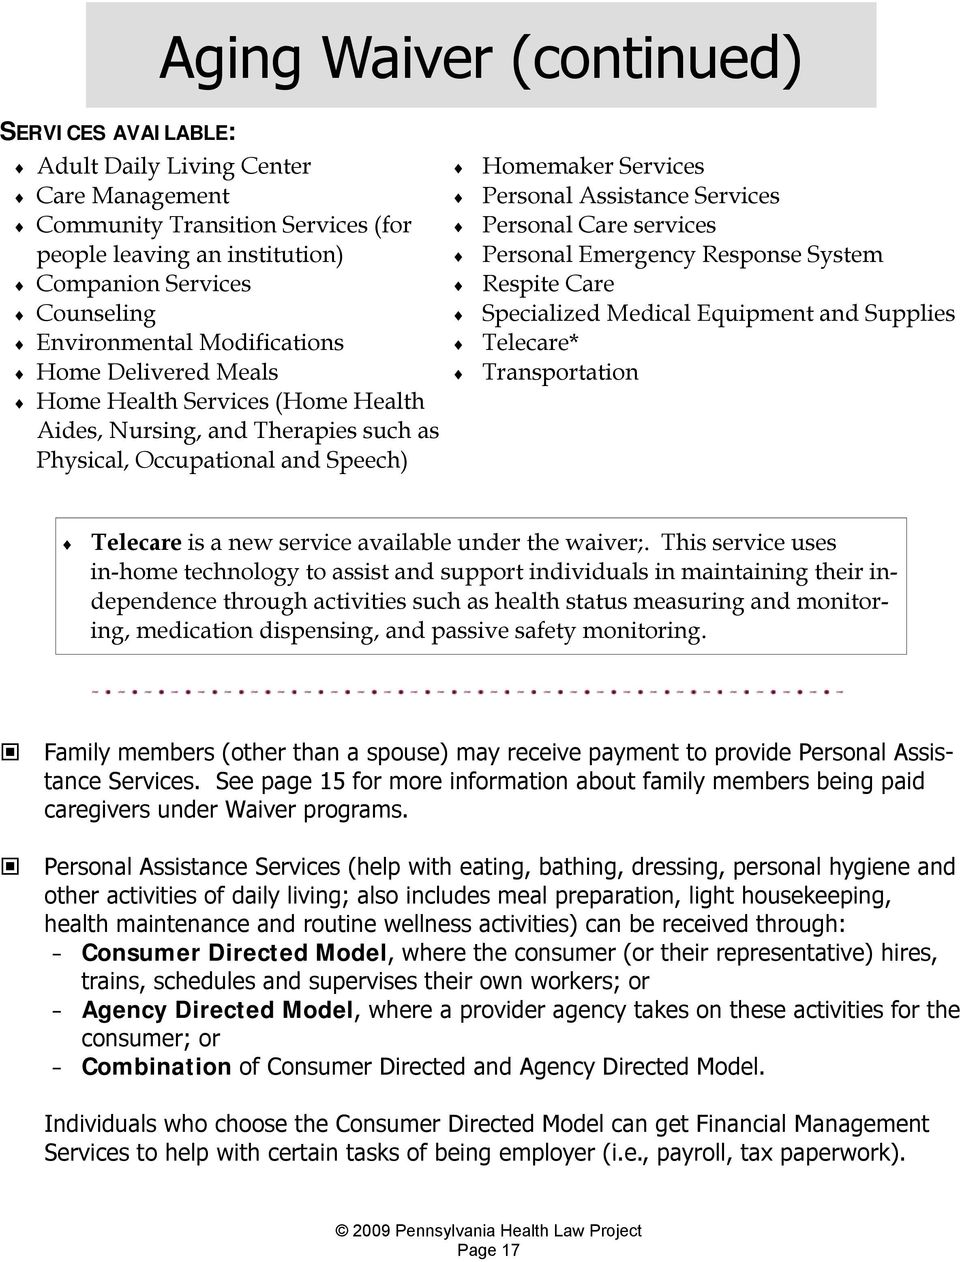 HOME AND COMMUNITY BASED SERVICES (HCBS) WAIVER PROGRAMS: - PDF